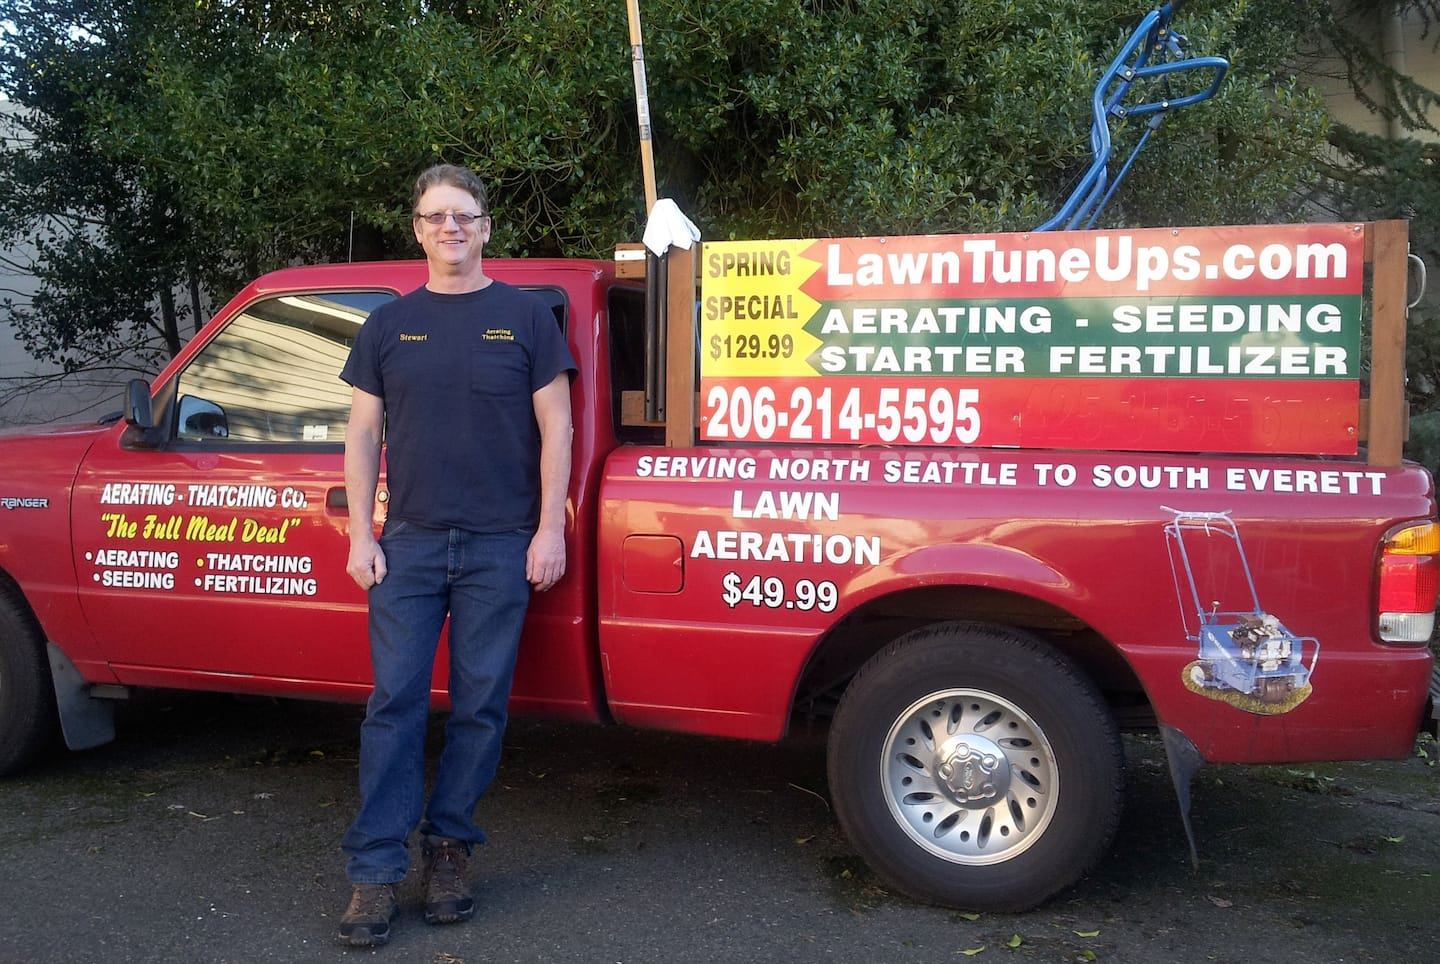 Stewart Armour is the owner and operator of Aerating Thatching Co. in Seattle.